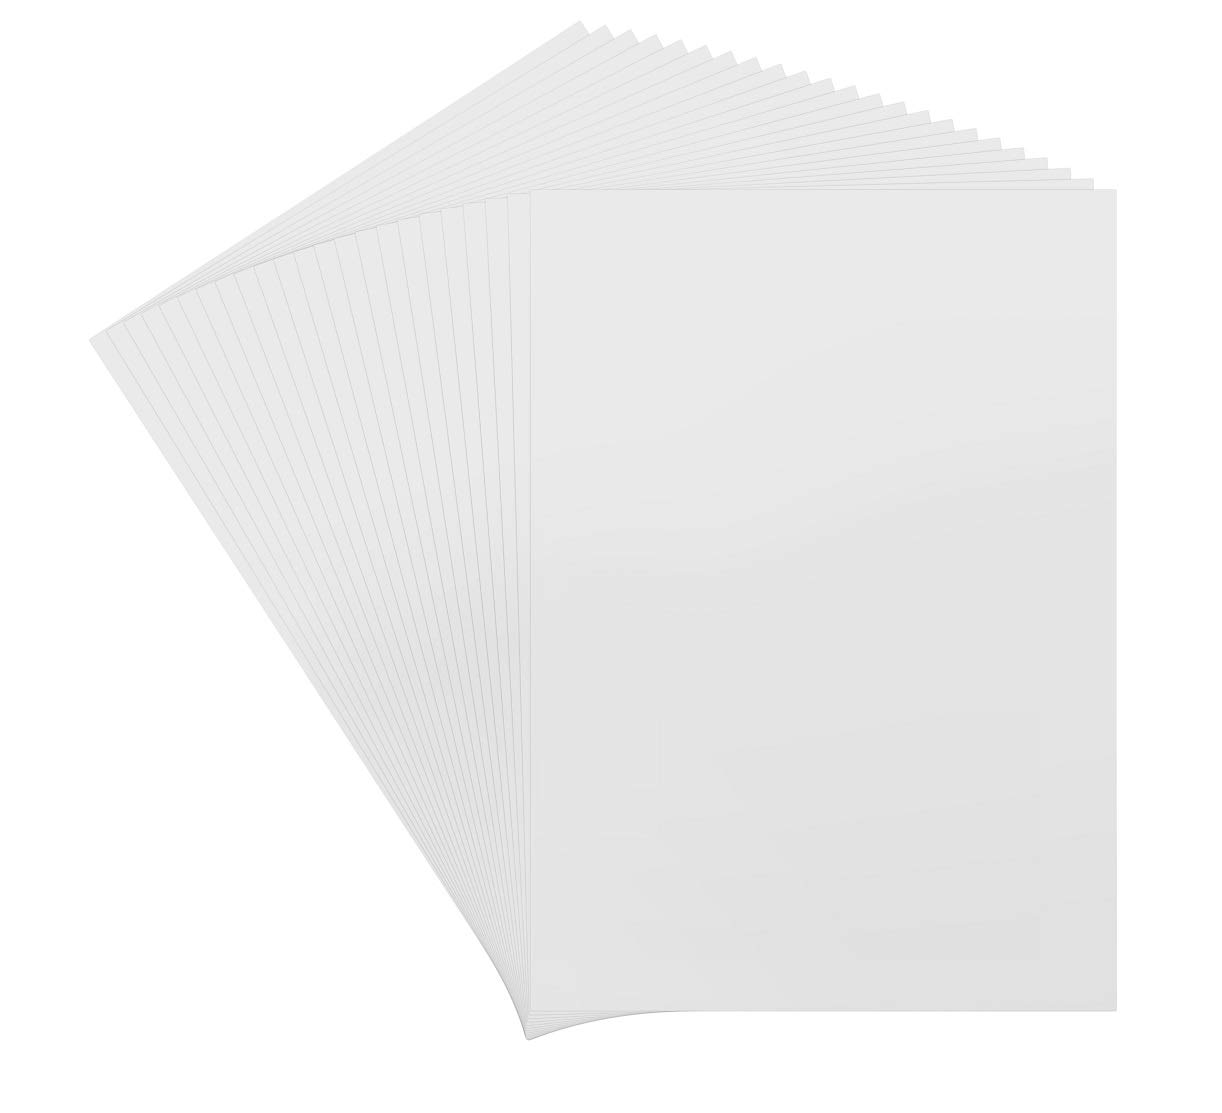 Golden State Art Backing Acid Free Bags Pack of 50 5x7 White Picture Mats Mattes with White Core Bevel Cut for 4x6 Photo